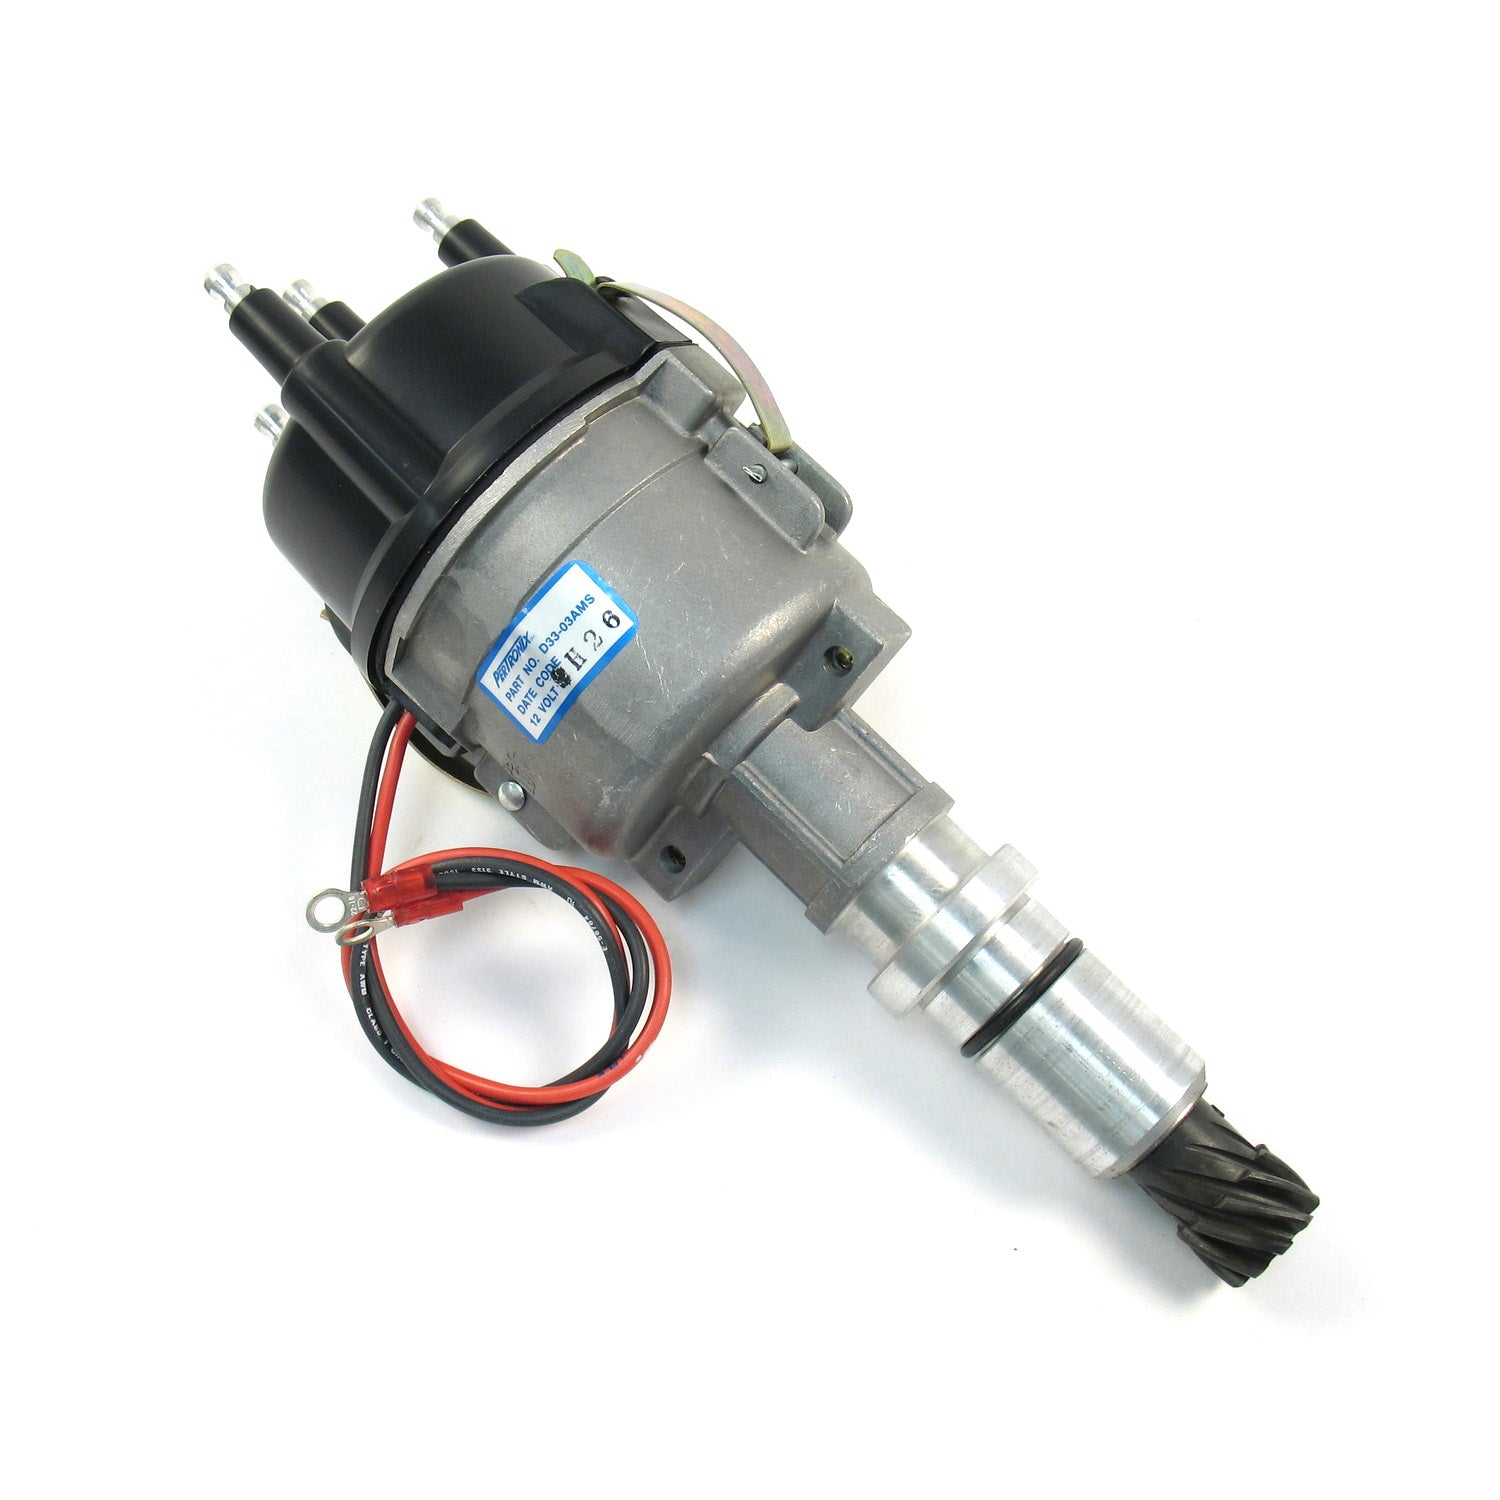 PerTronix D33-03AM Distributor Industrial Continental 3 cyl